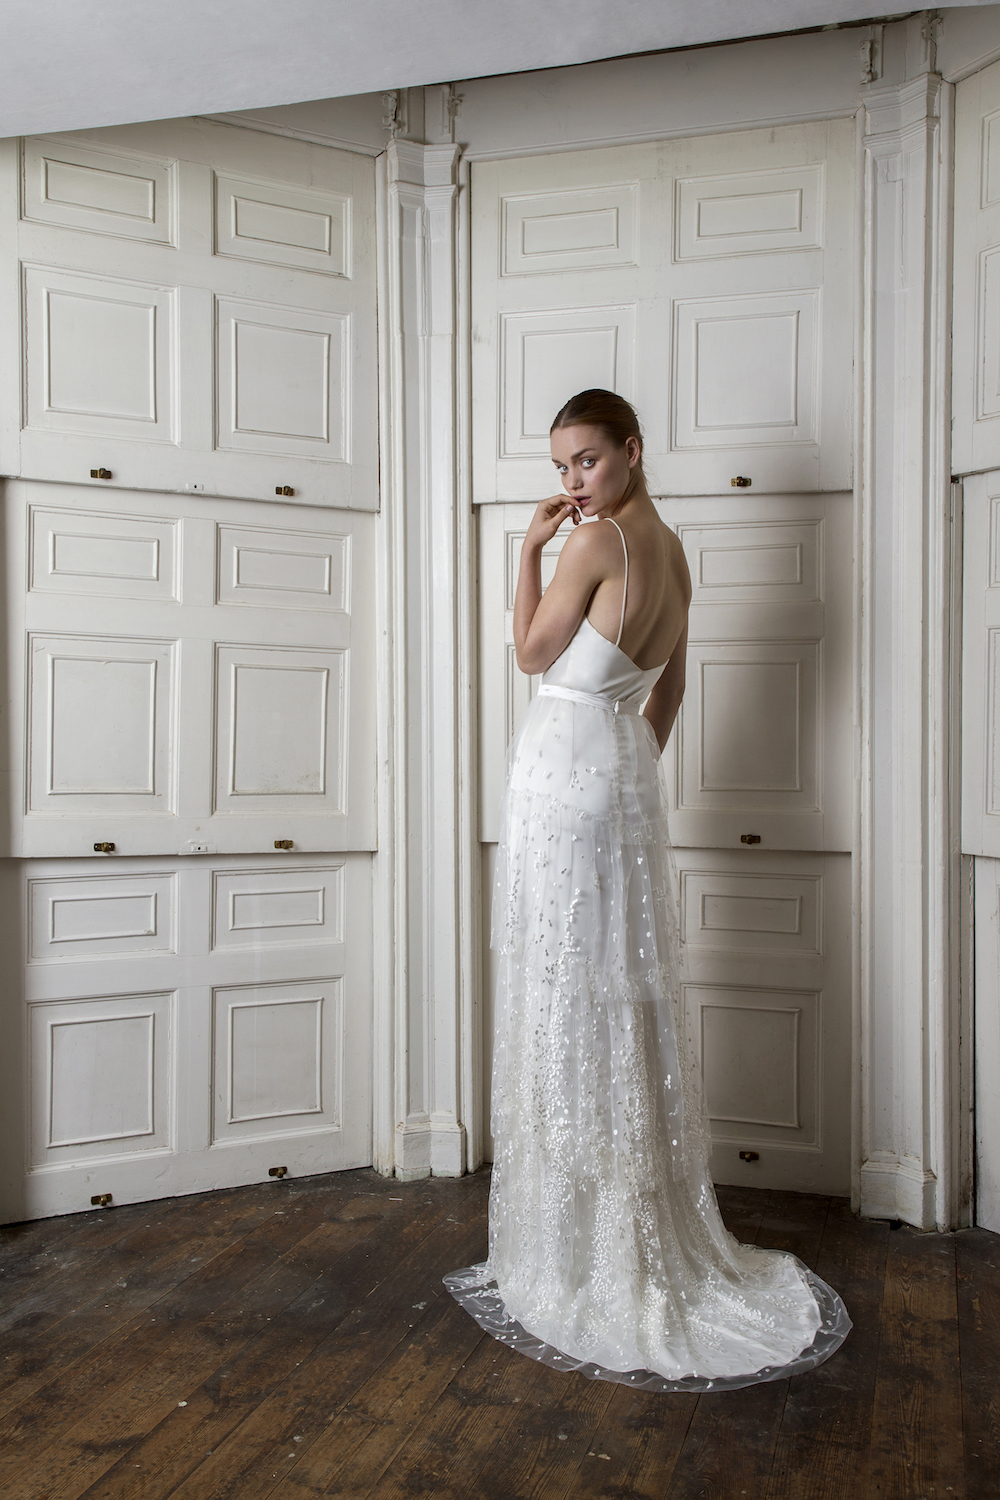 CAMDEN SKIRT & IRIS CAMISOLE | WEDDING DRESS BY HALFPENNY LONDON